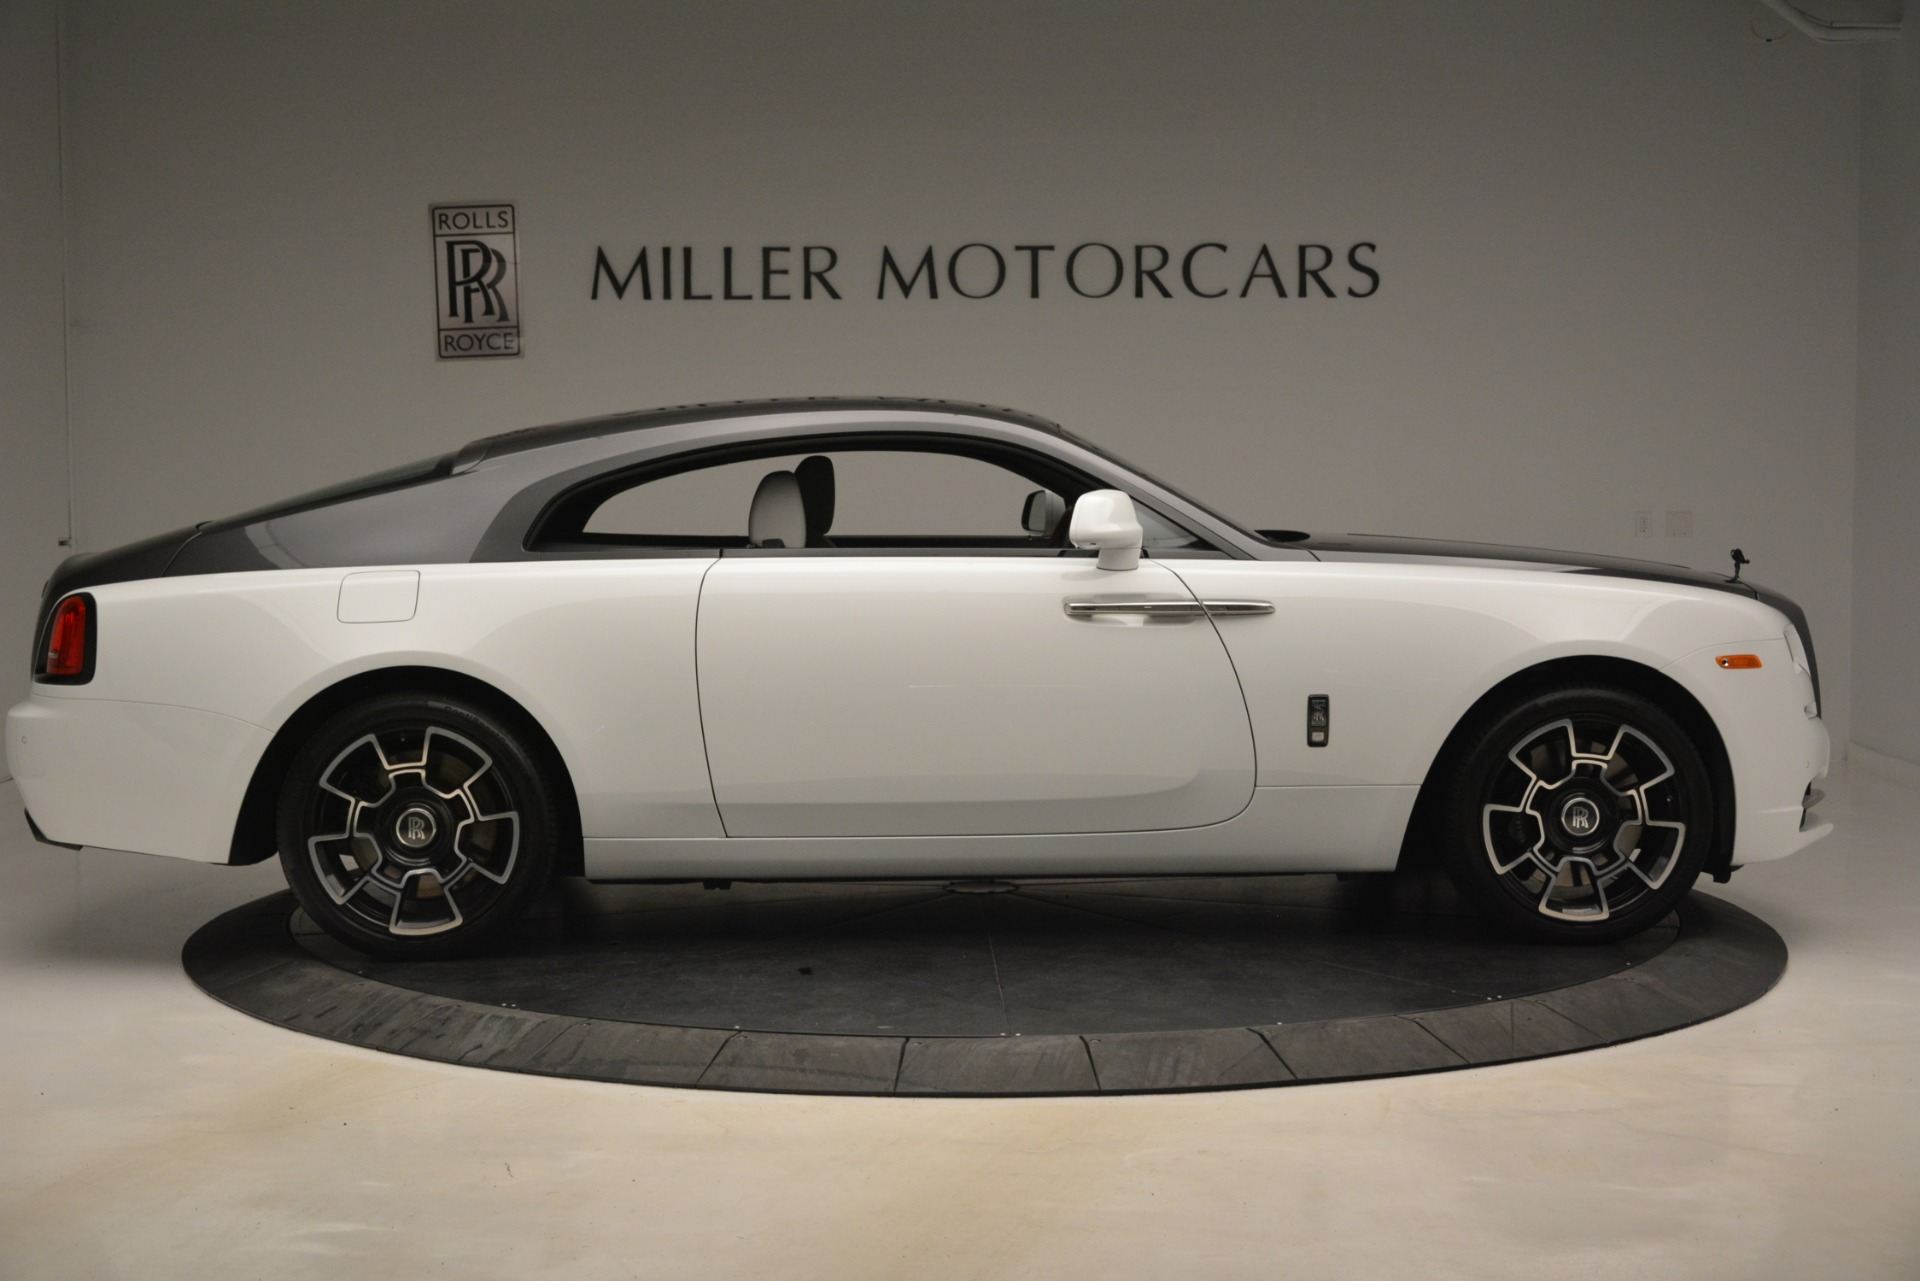 Used 2018 Rolls-Royce Wraith Black Badge Nebula Collection For Sale In Westport, CT 2491_p9